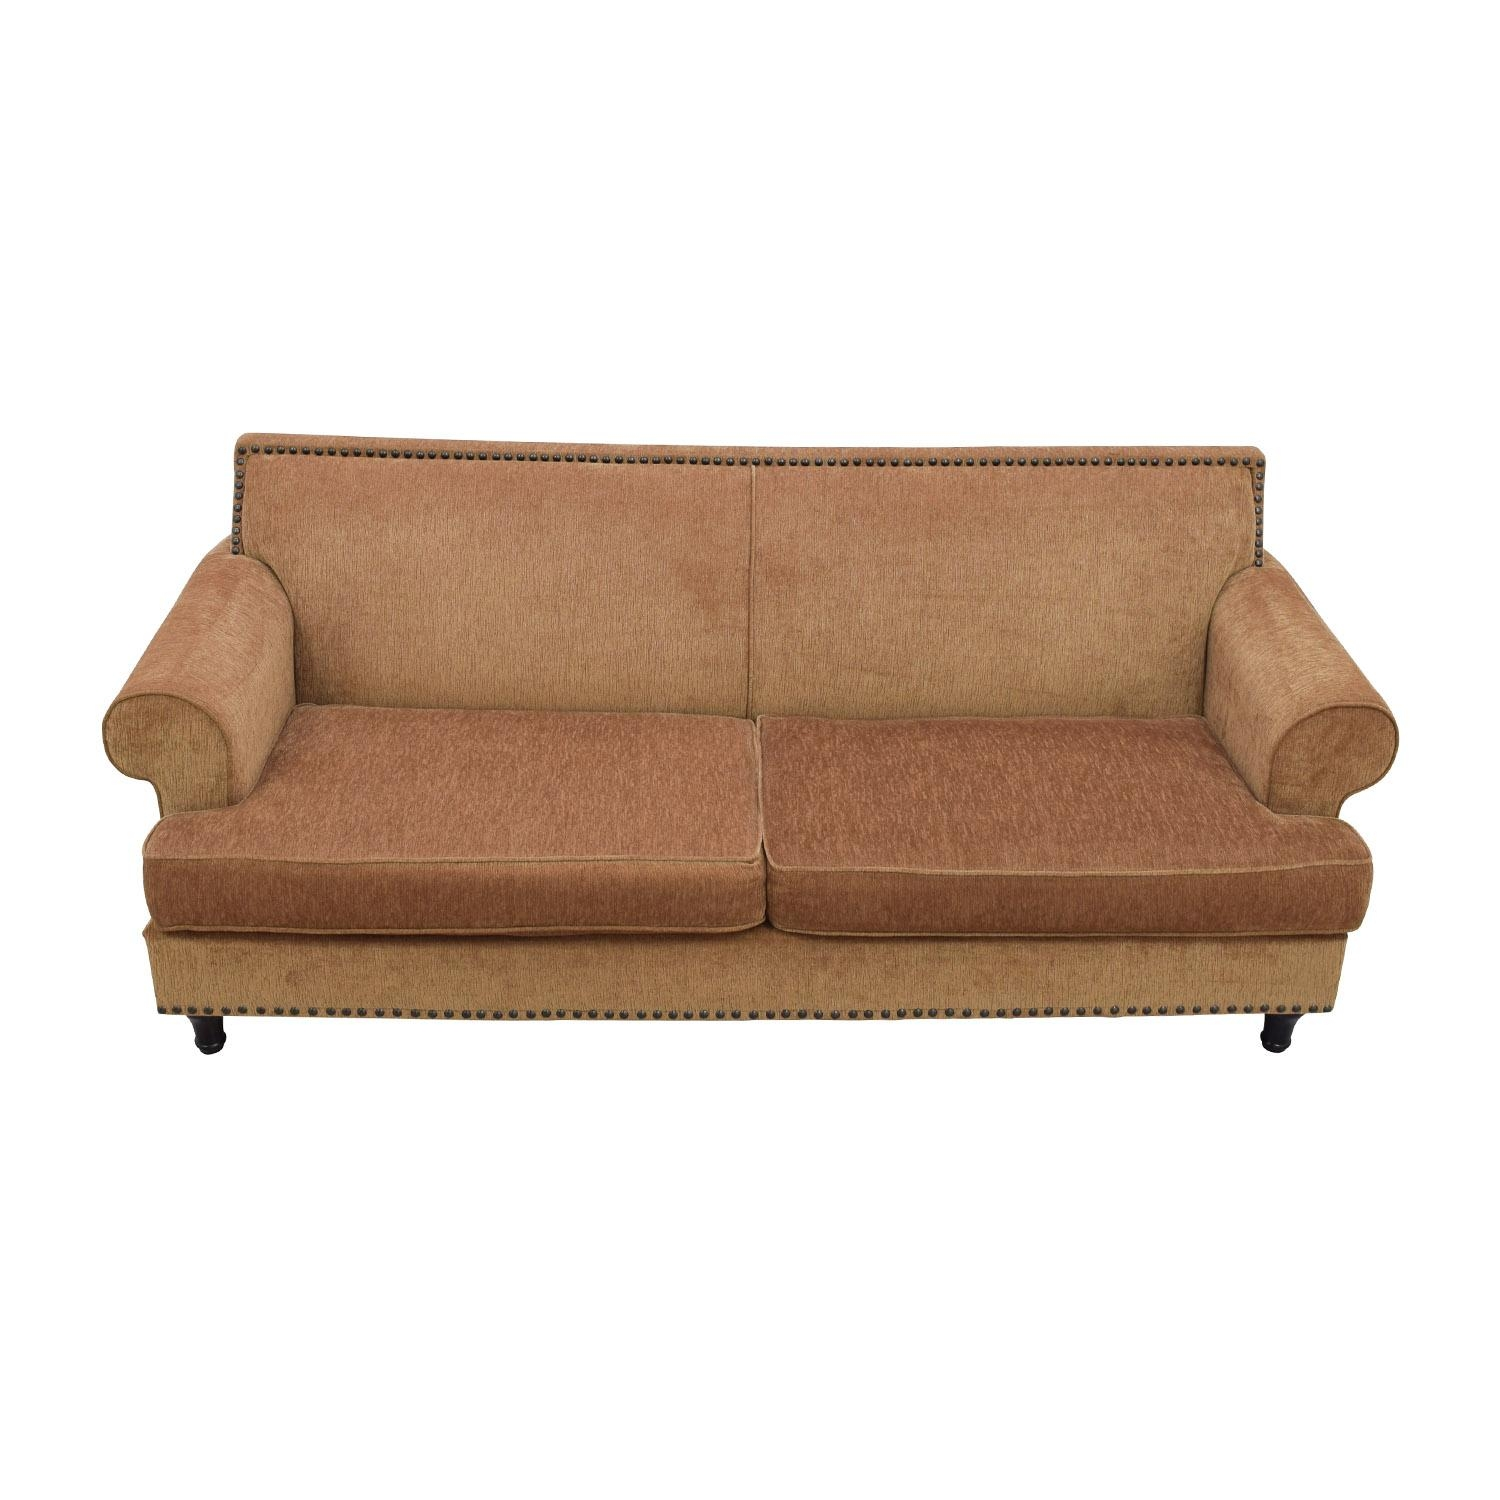 Top Brand Classic Sofas On Sale With Regard To Pier 1 Sofa Beds (View 18 of 20)